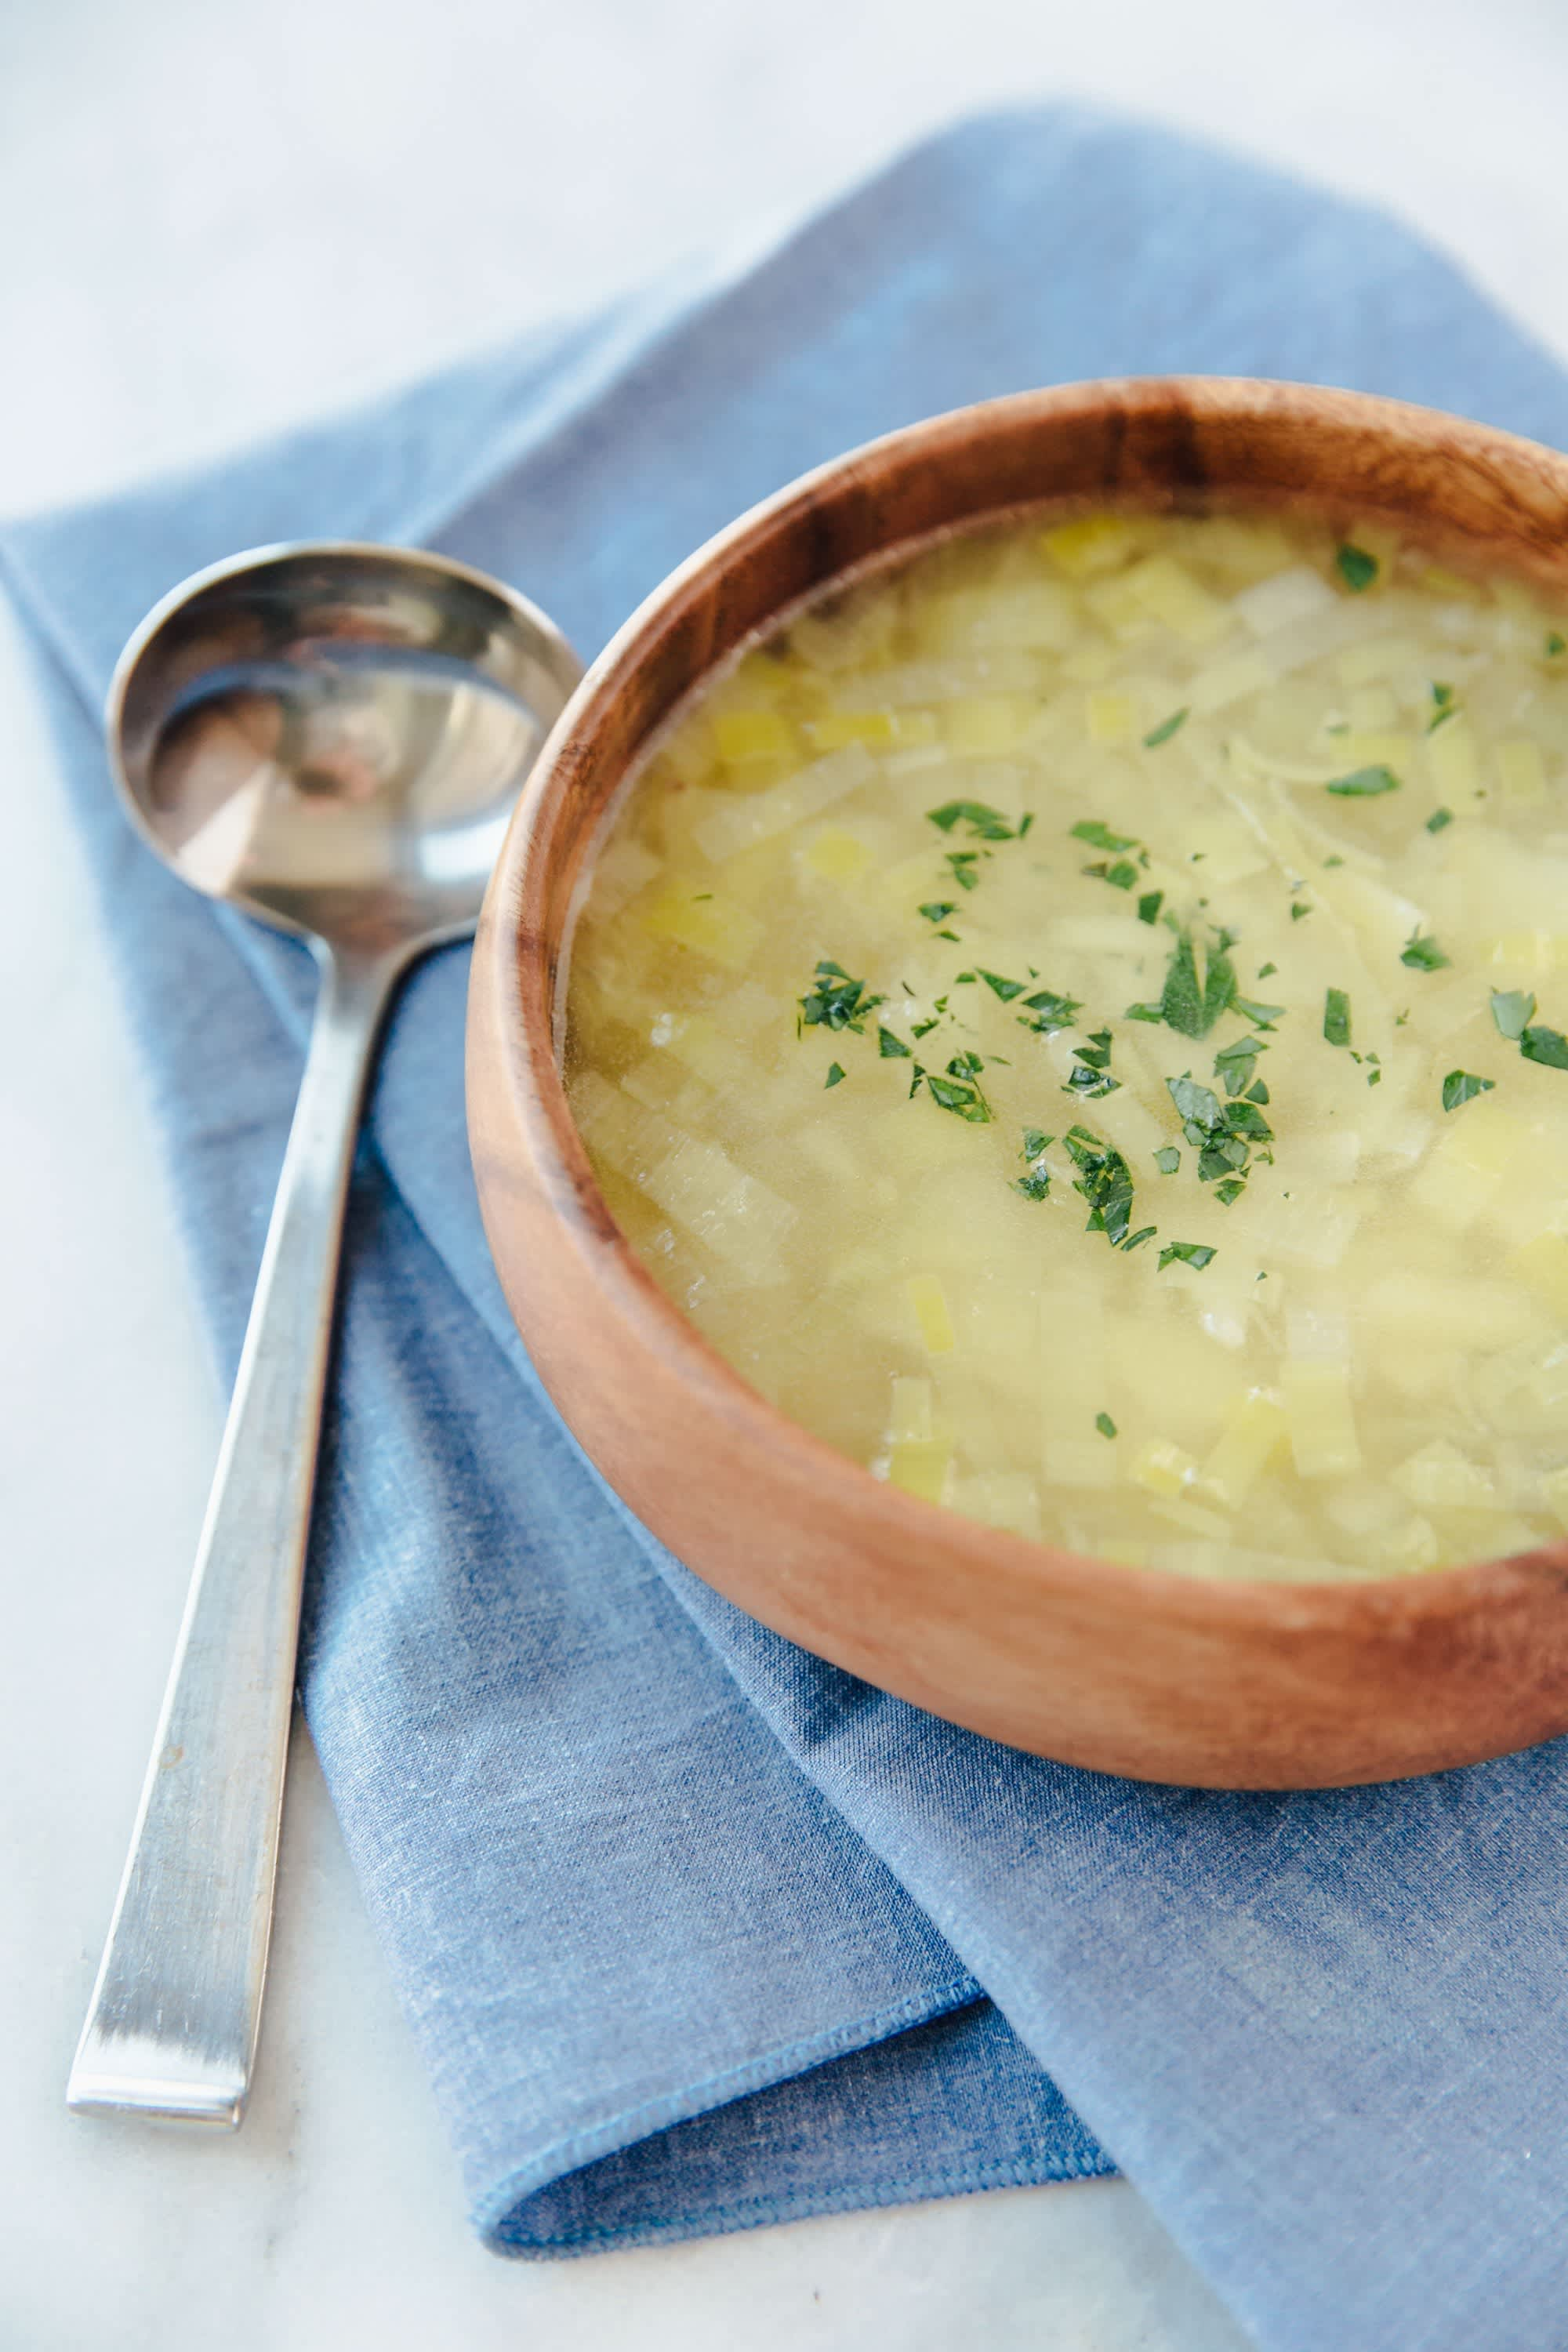 Parisian Potage (Rustic Leek and Potato Soup)